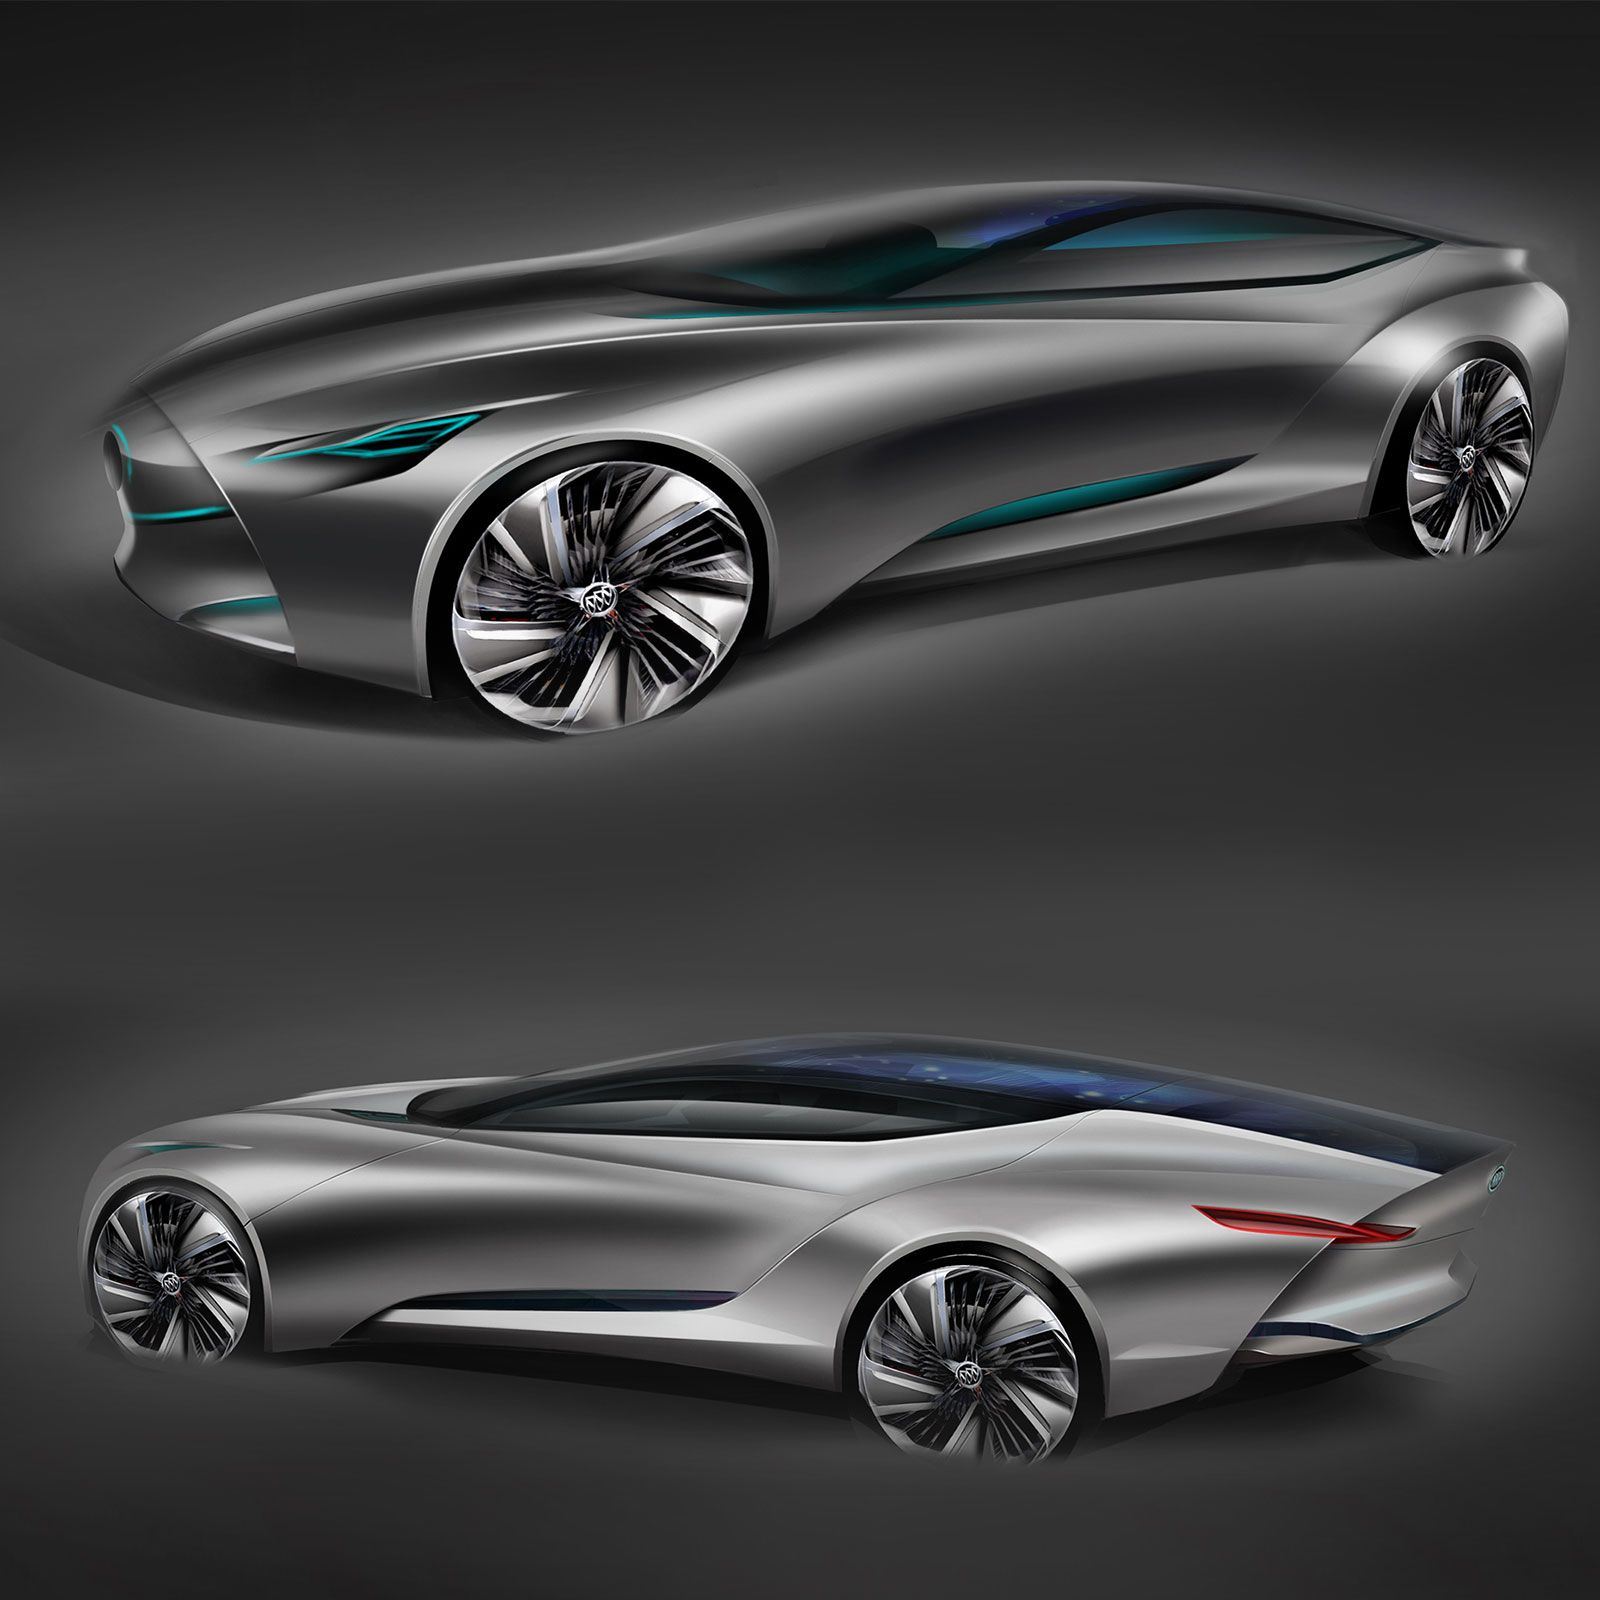 Buick Riviera Concept - Design Gallery and Videos: http://www.carbodydesign.com/2013/07/buick-riviera-concept-design-gallery-and-videos/